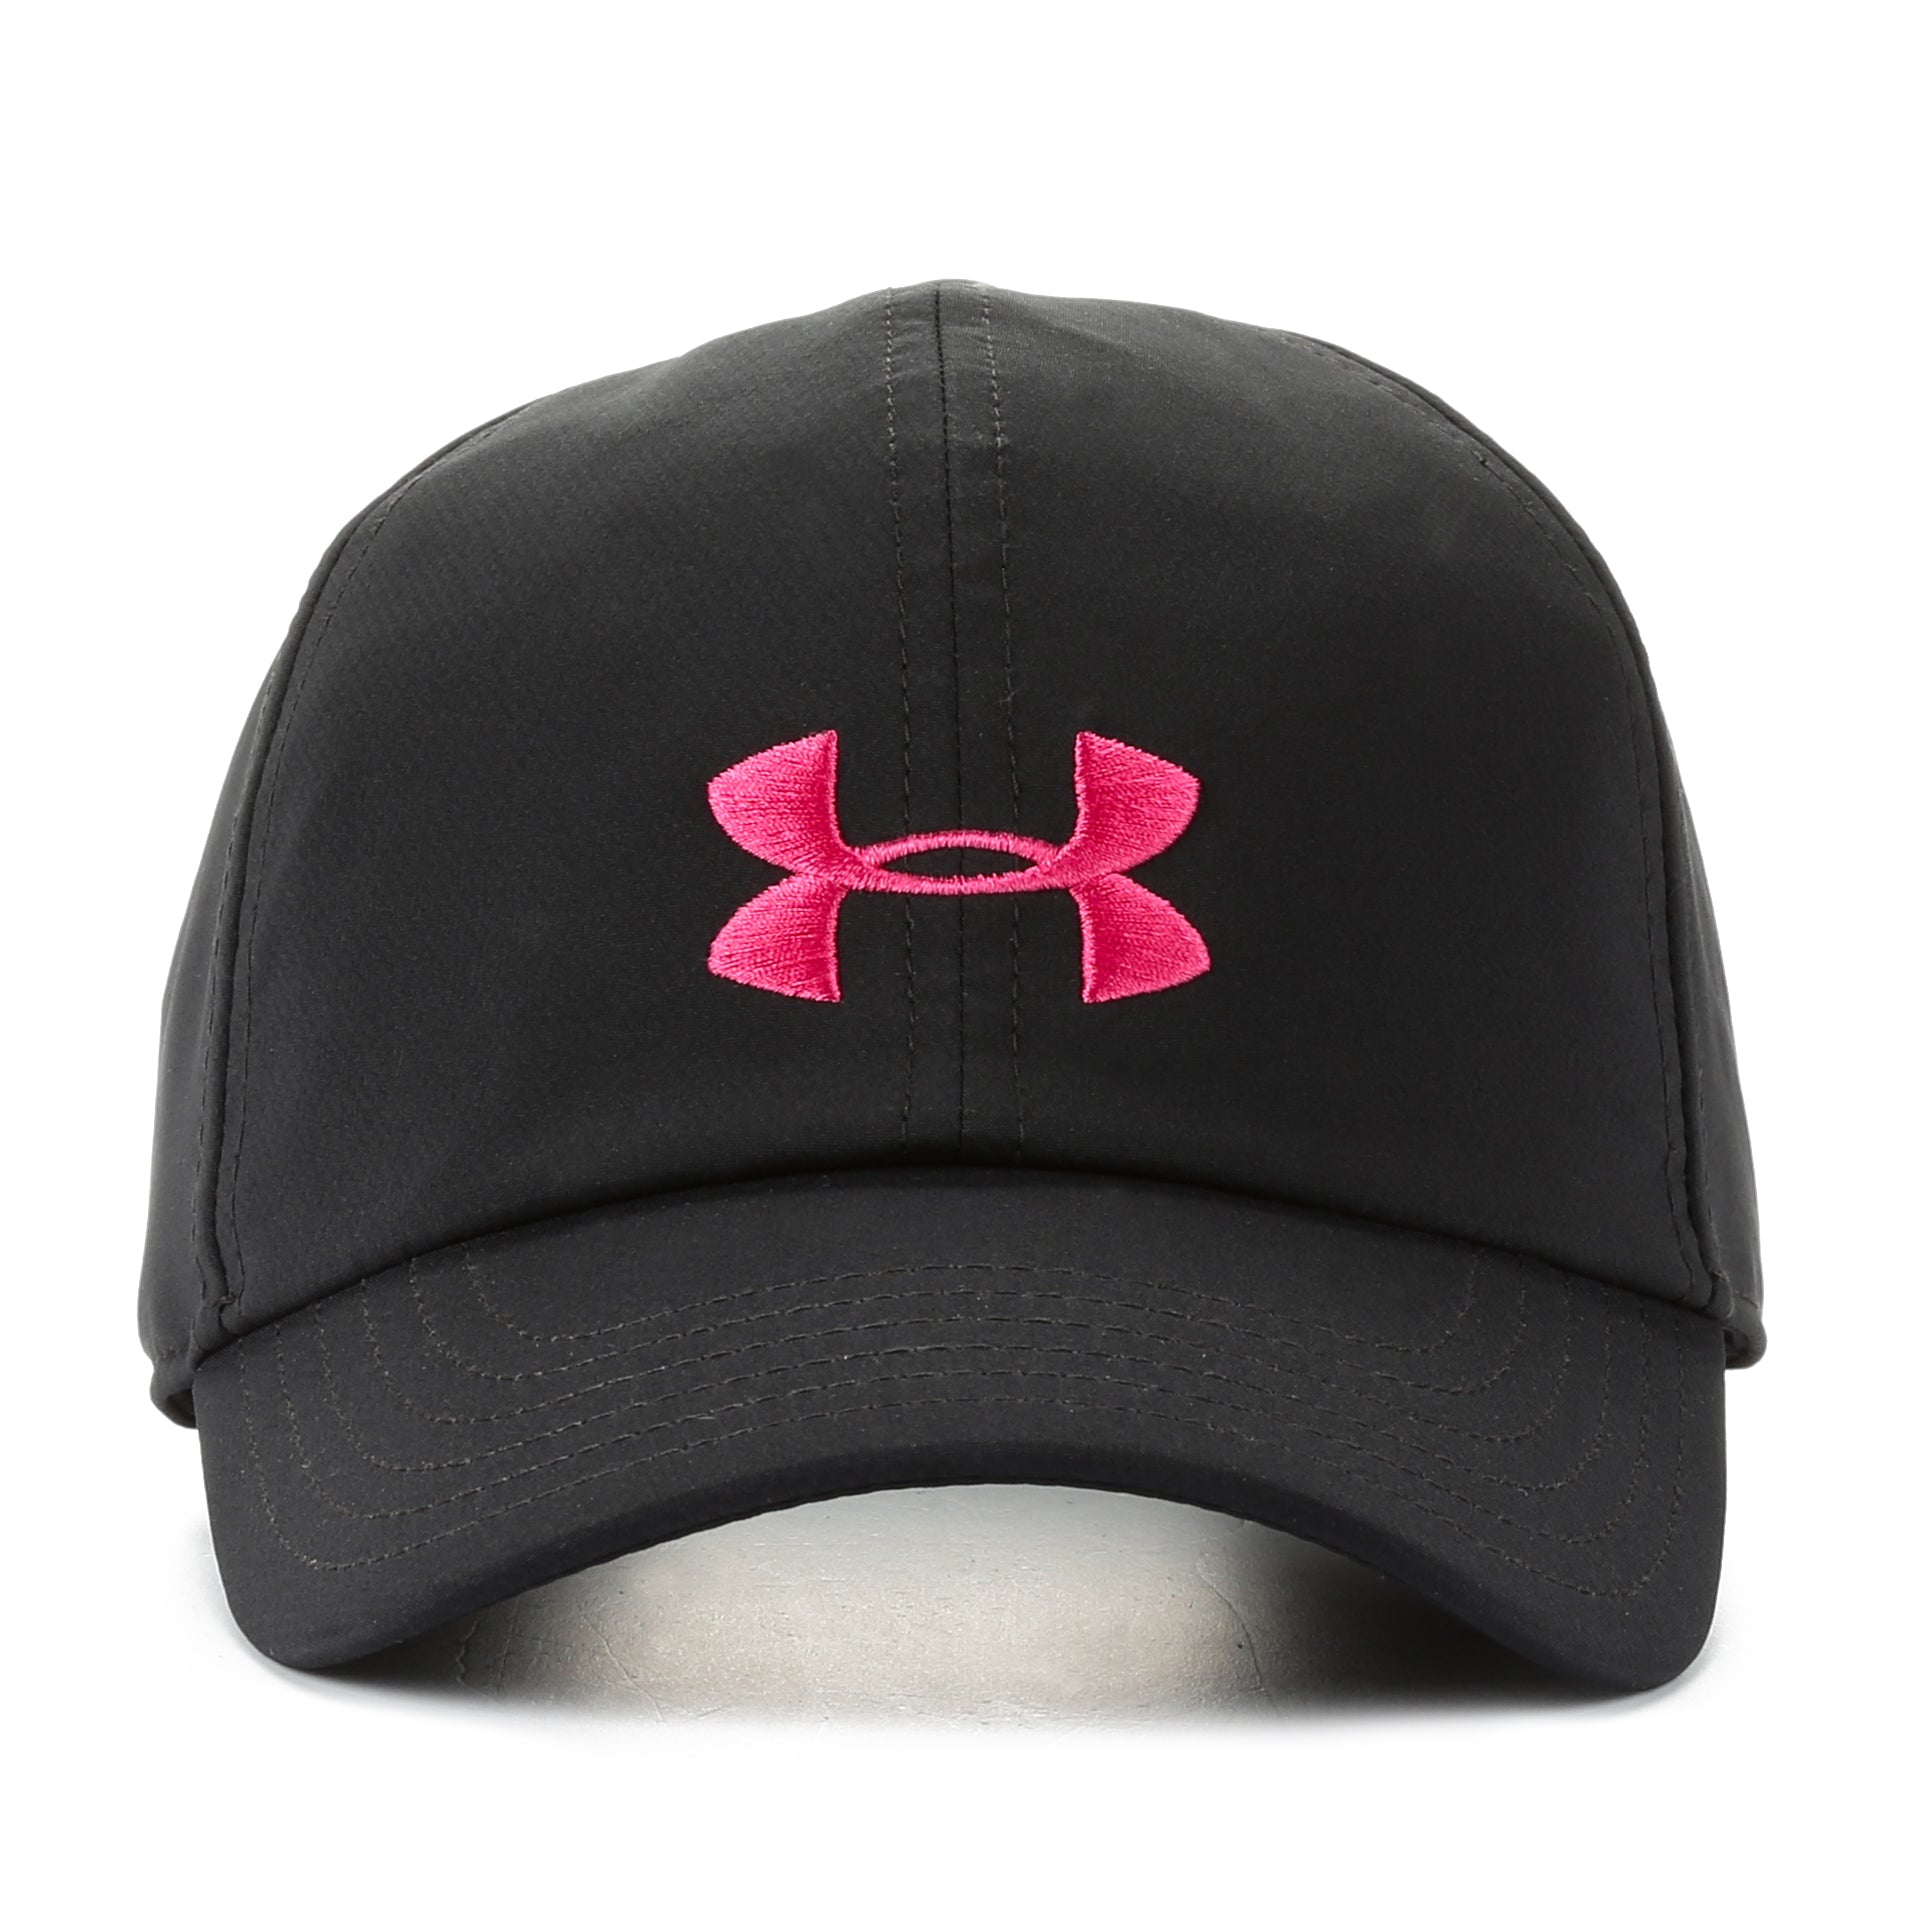 Under Armour Women s Renegade Cap - Black Pink - New Star a1683cd385a